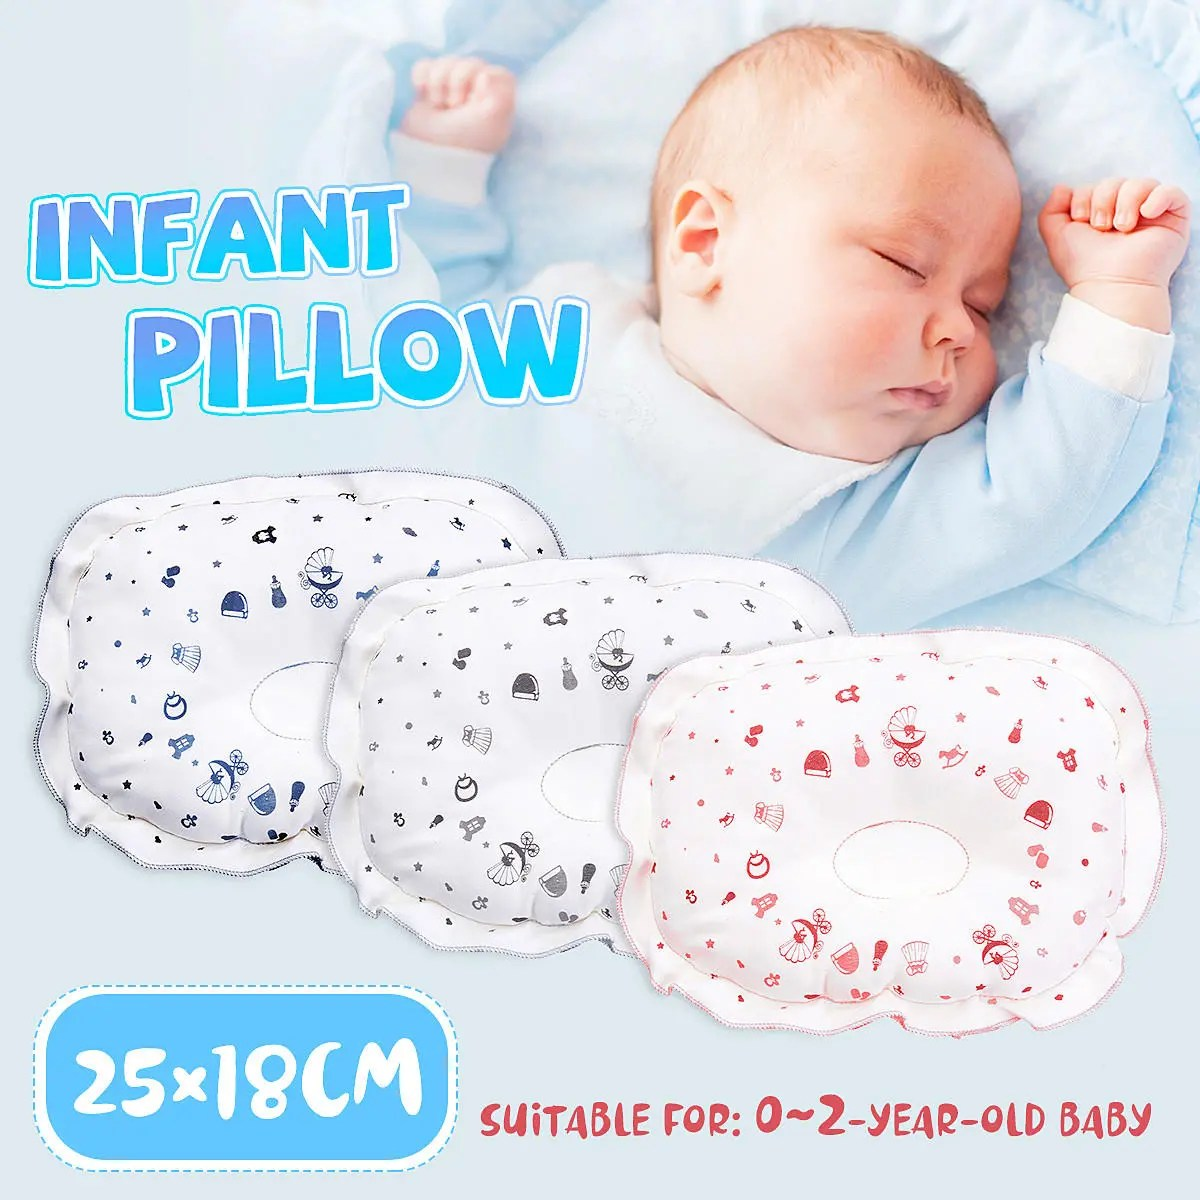 Newborn Babies Online Shopping Newborn Baby Pillow Infant Prevent Flat Head Support Pillow